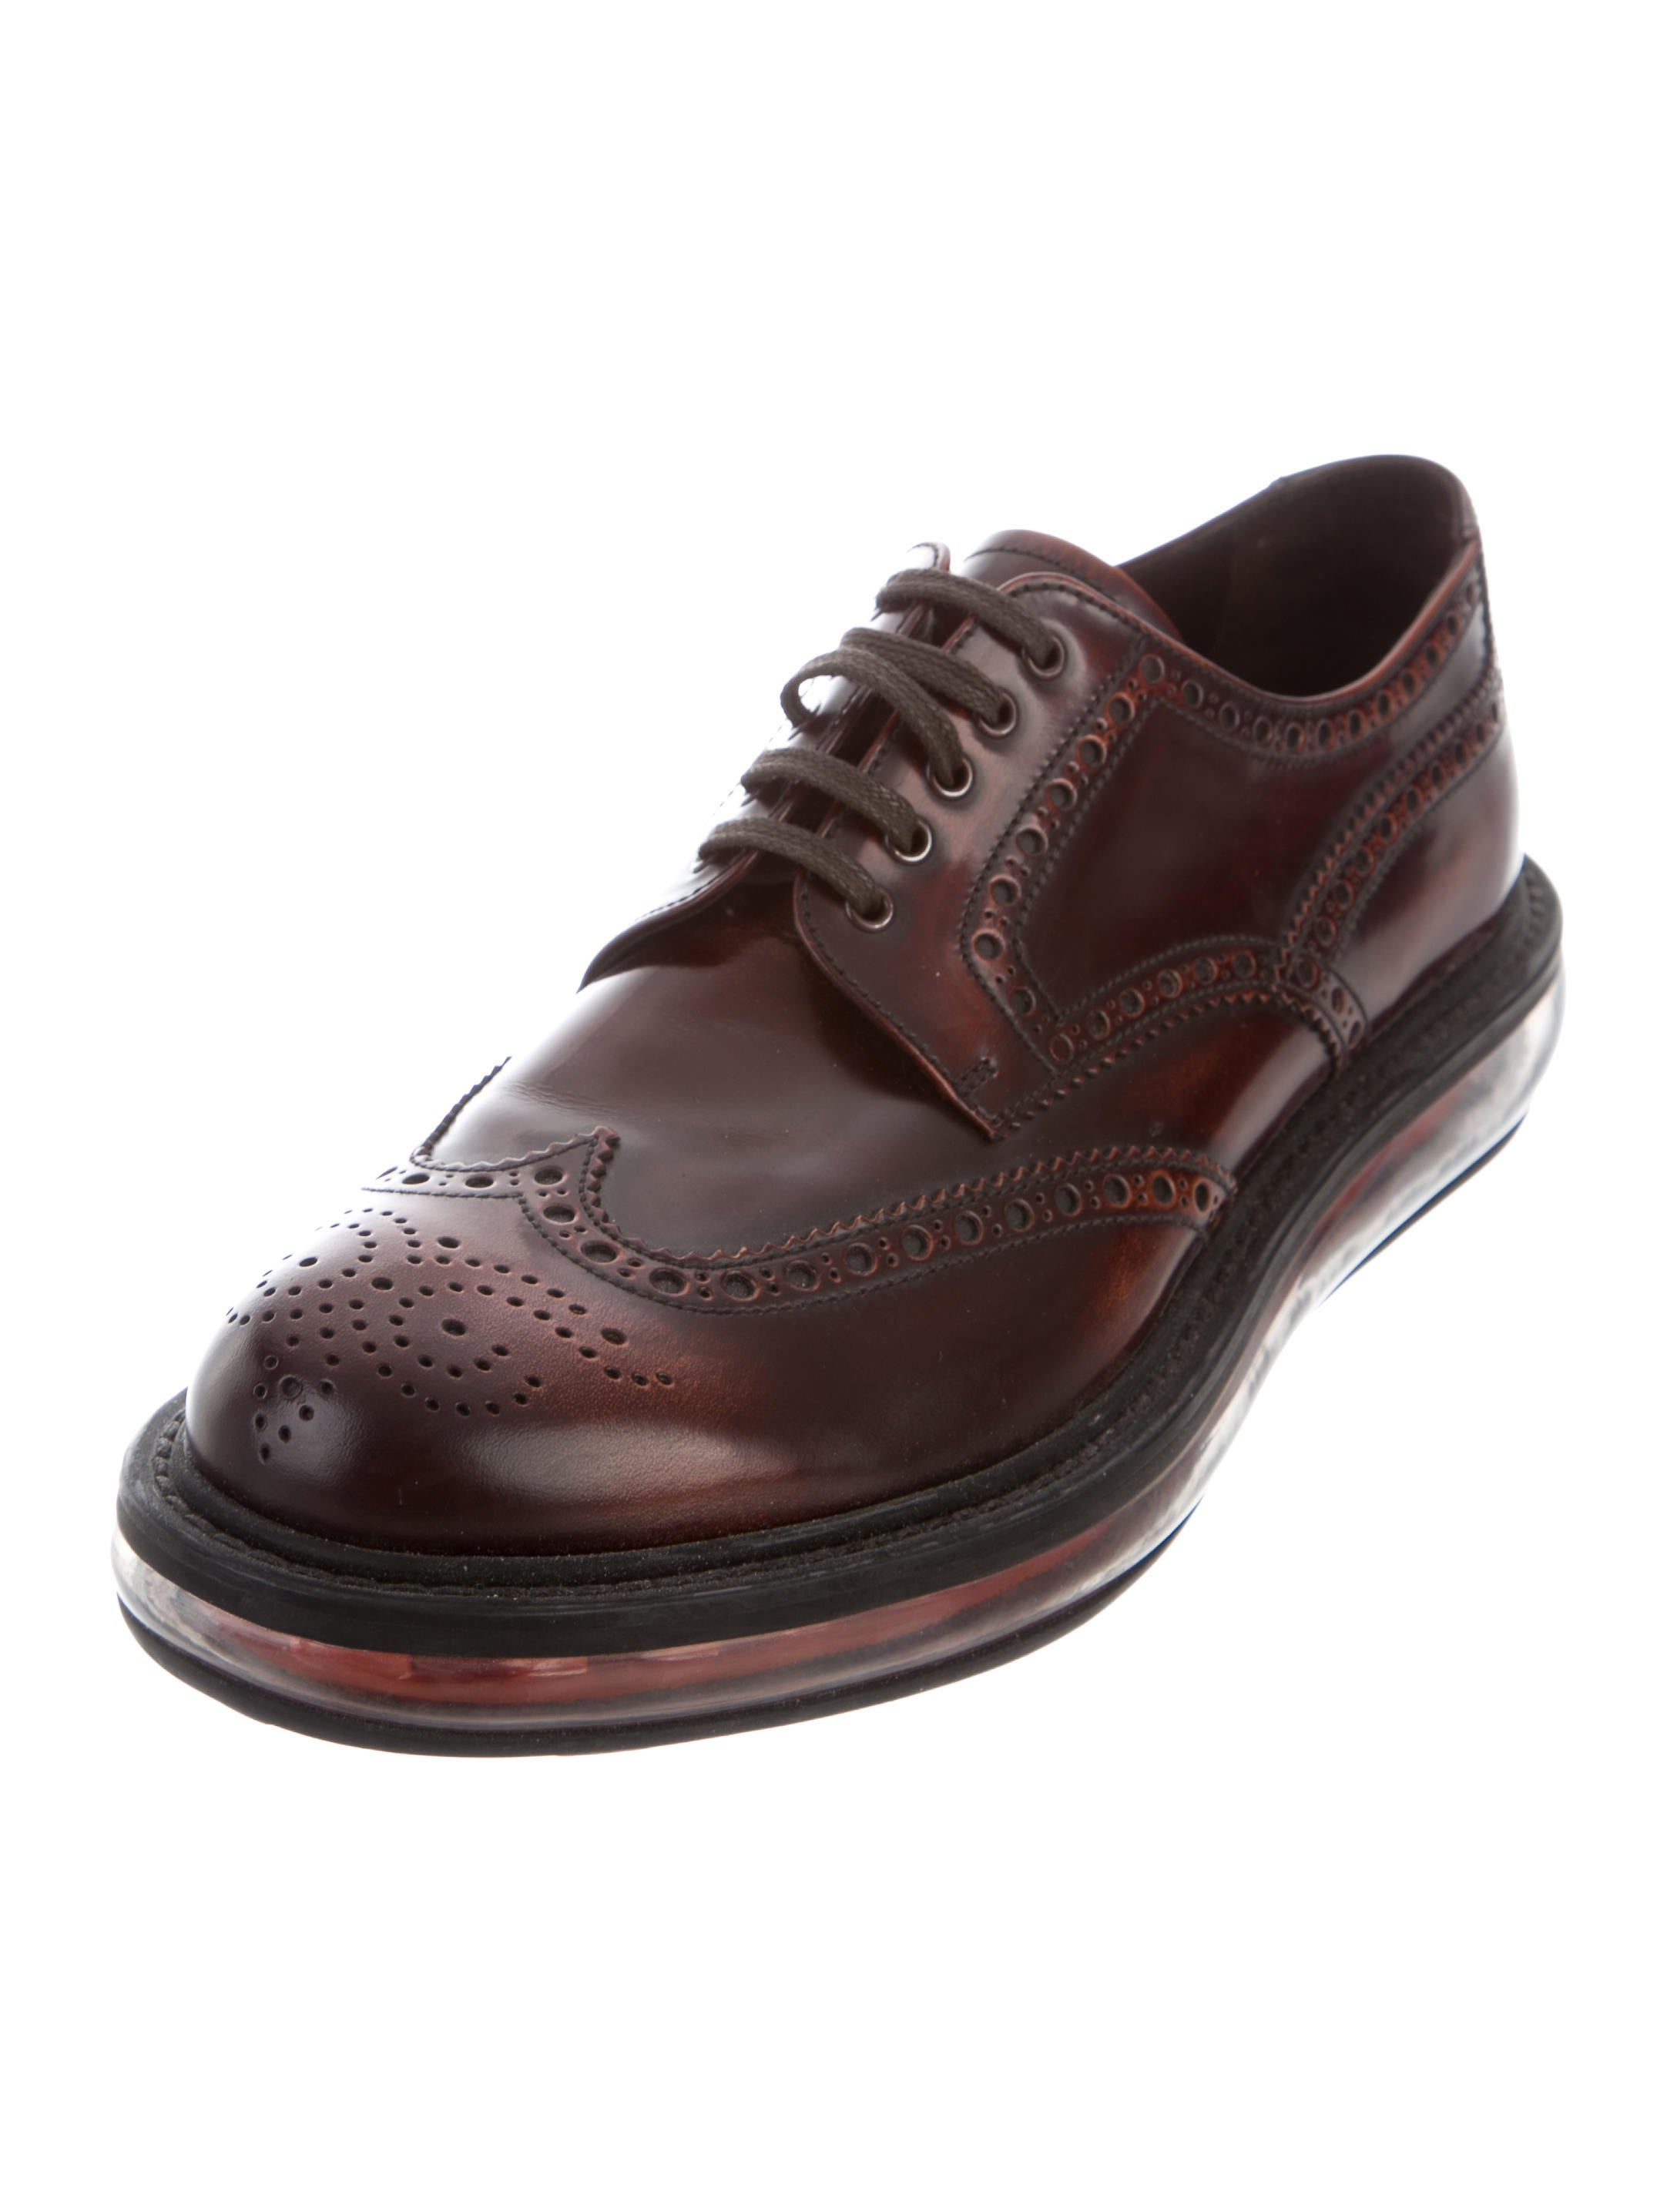 Church's - Brogue Leather Oxfords xianggangdishini.gq, offering the modern energy, style and personalized service of Saks Fifth Avenue stores, in an enhanced, easy-to-navigate shopping experience.